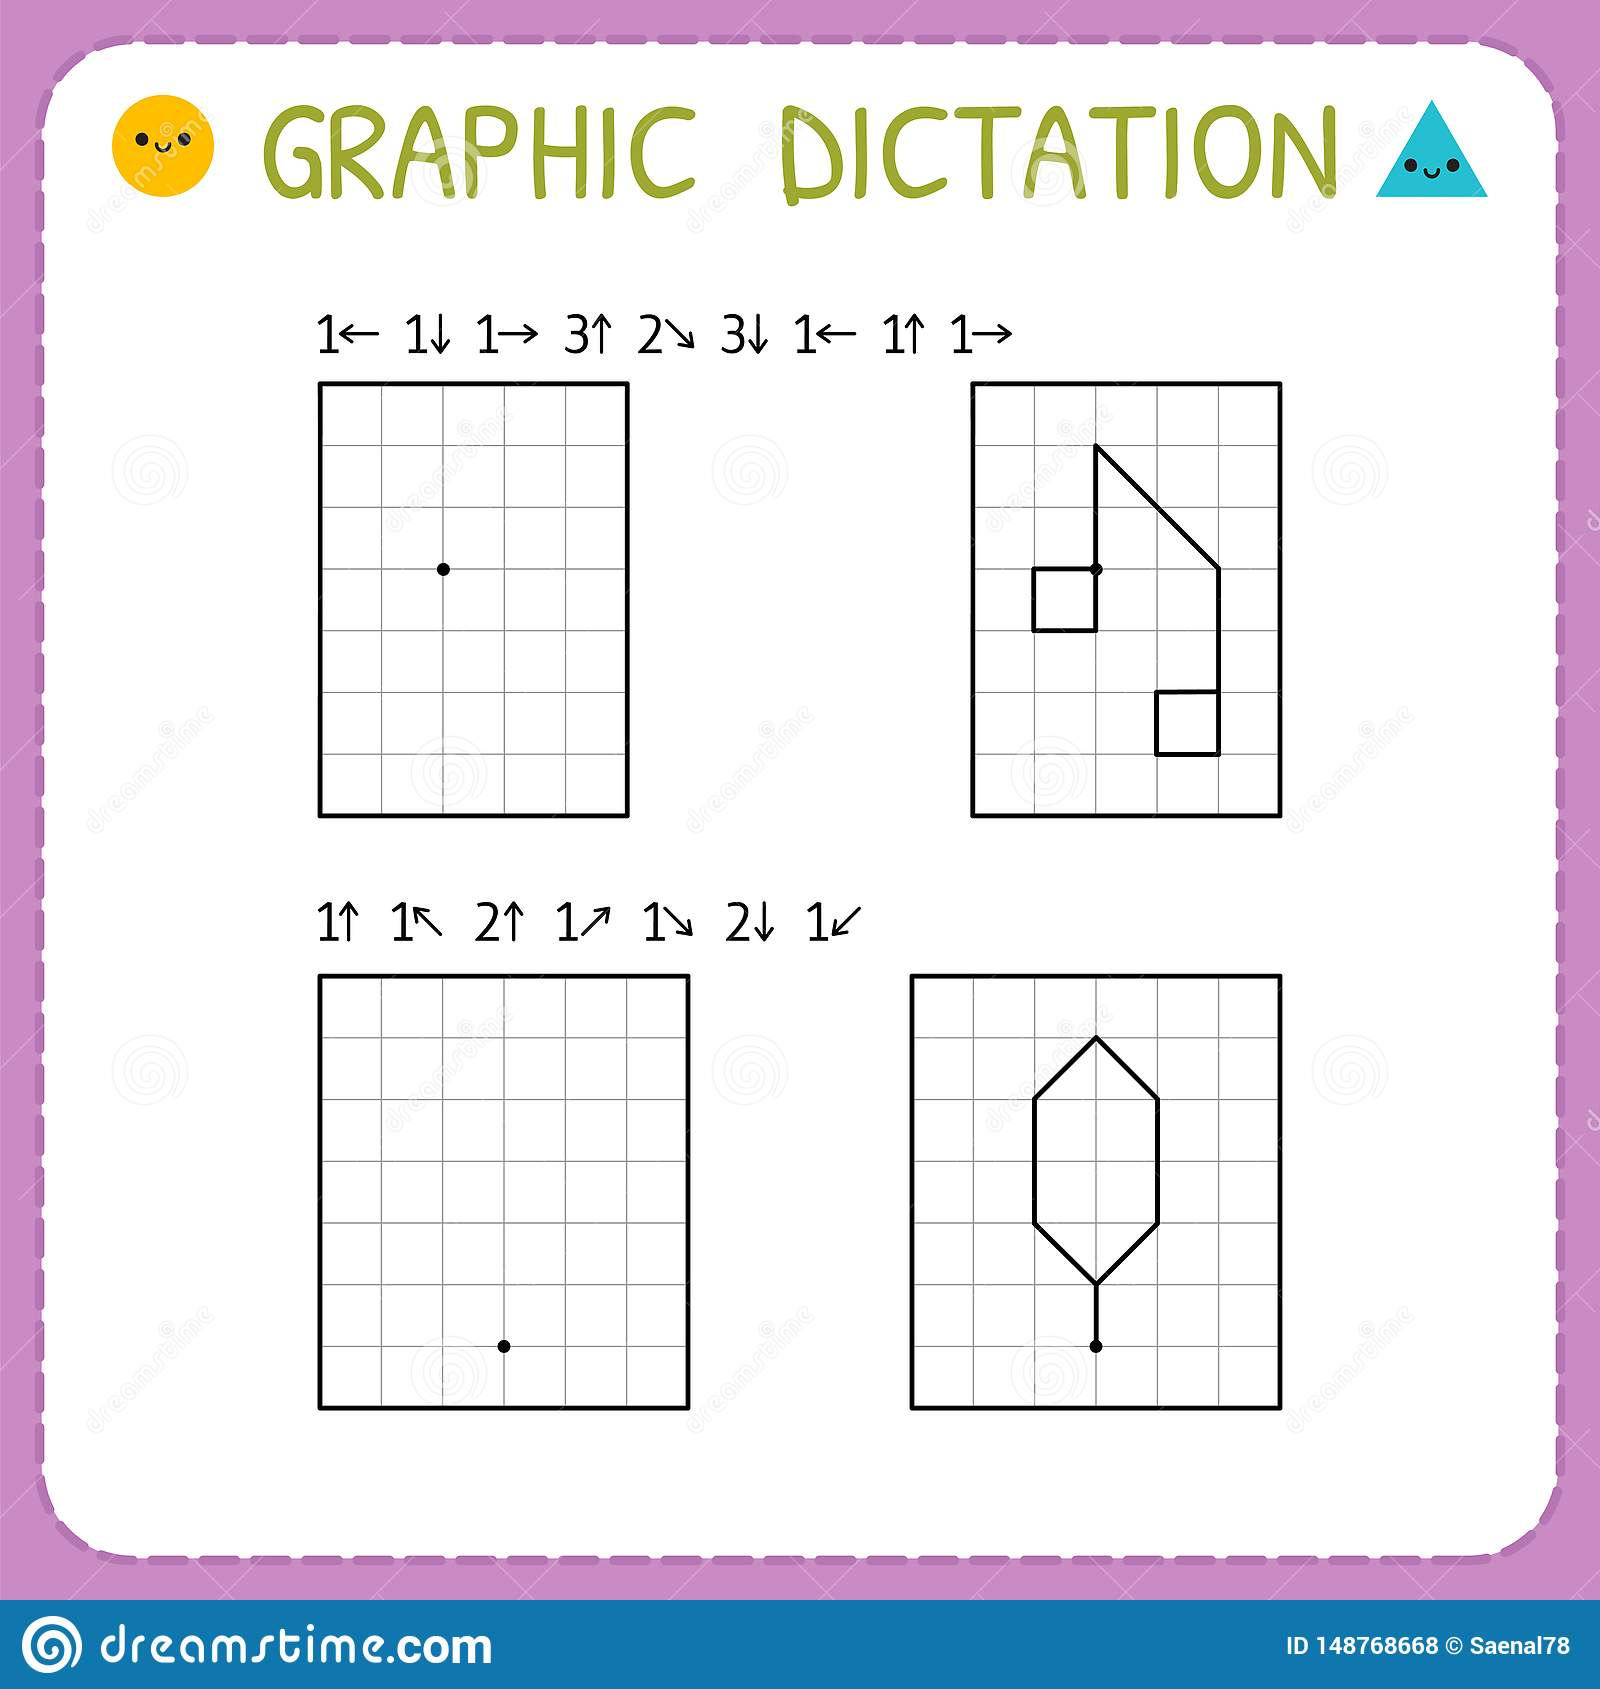 Graphic Dictation Working Pages For Children Preschool